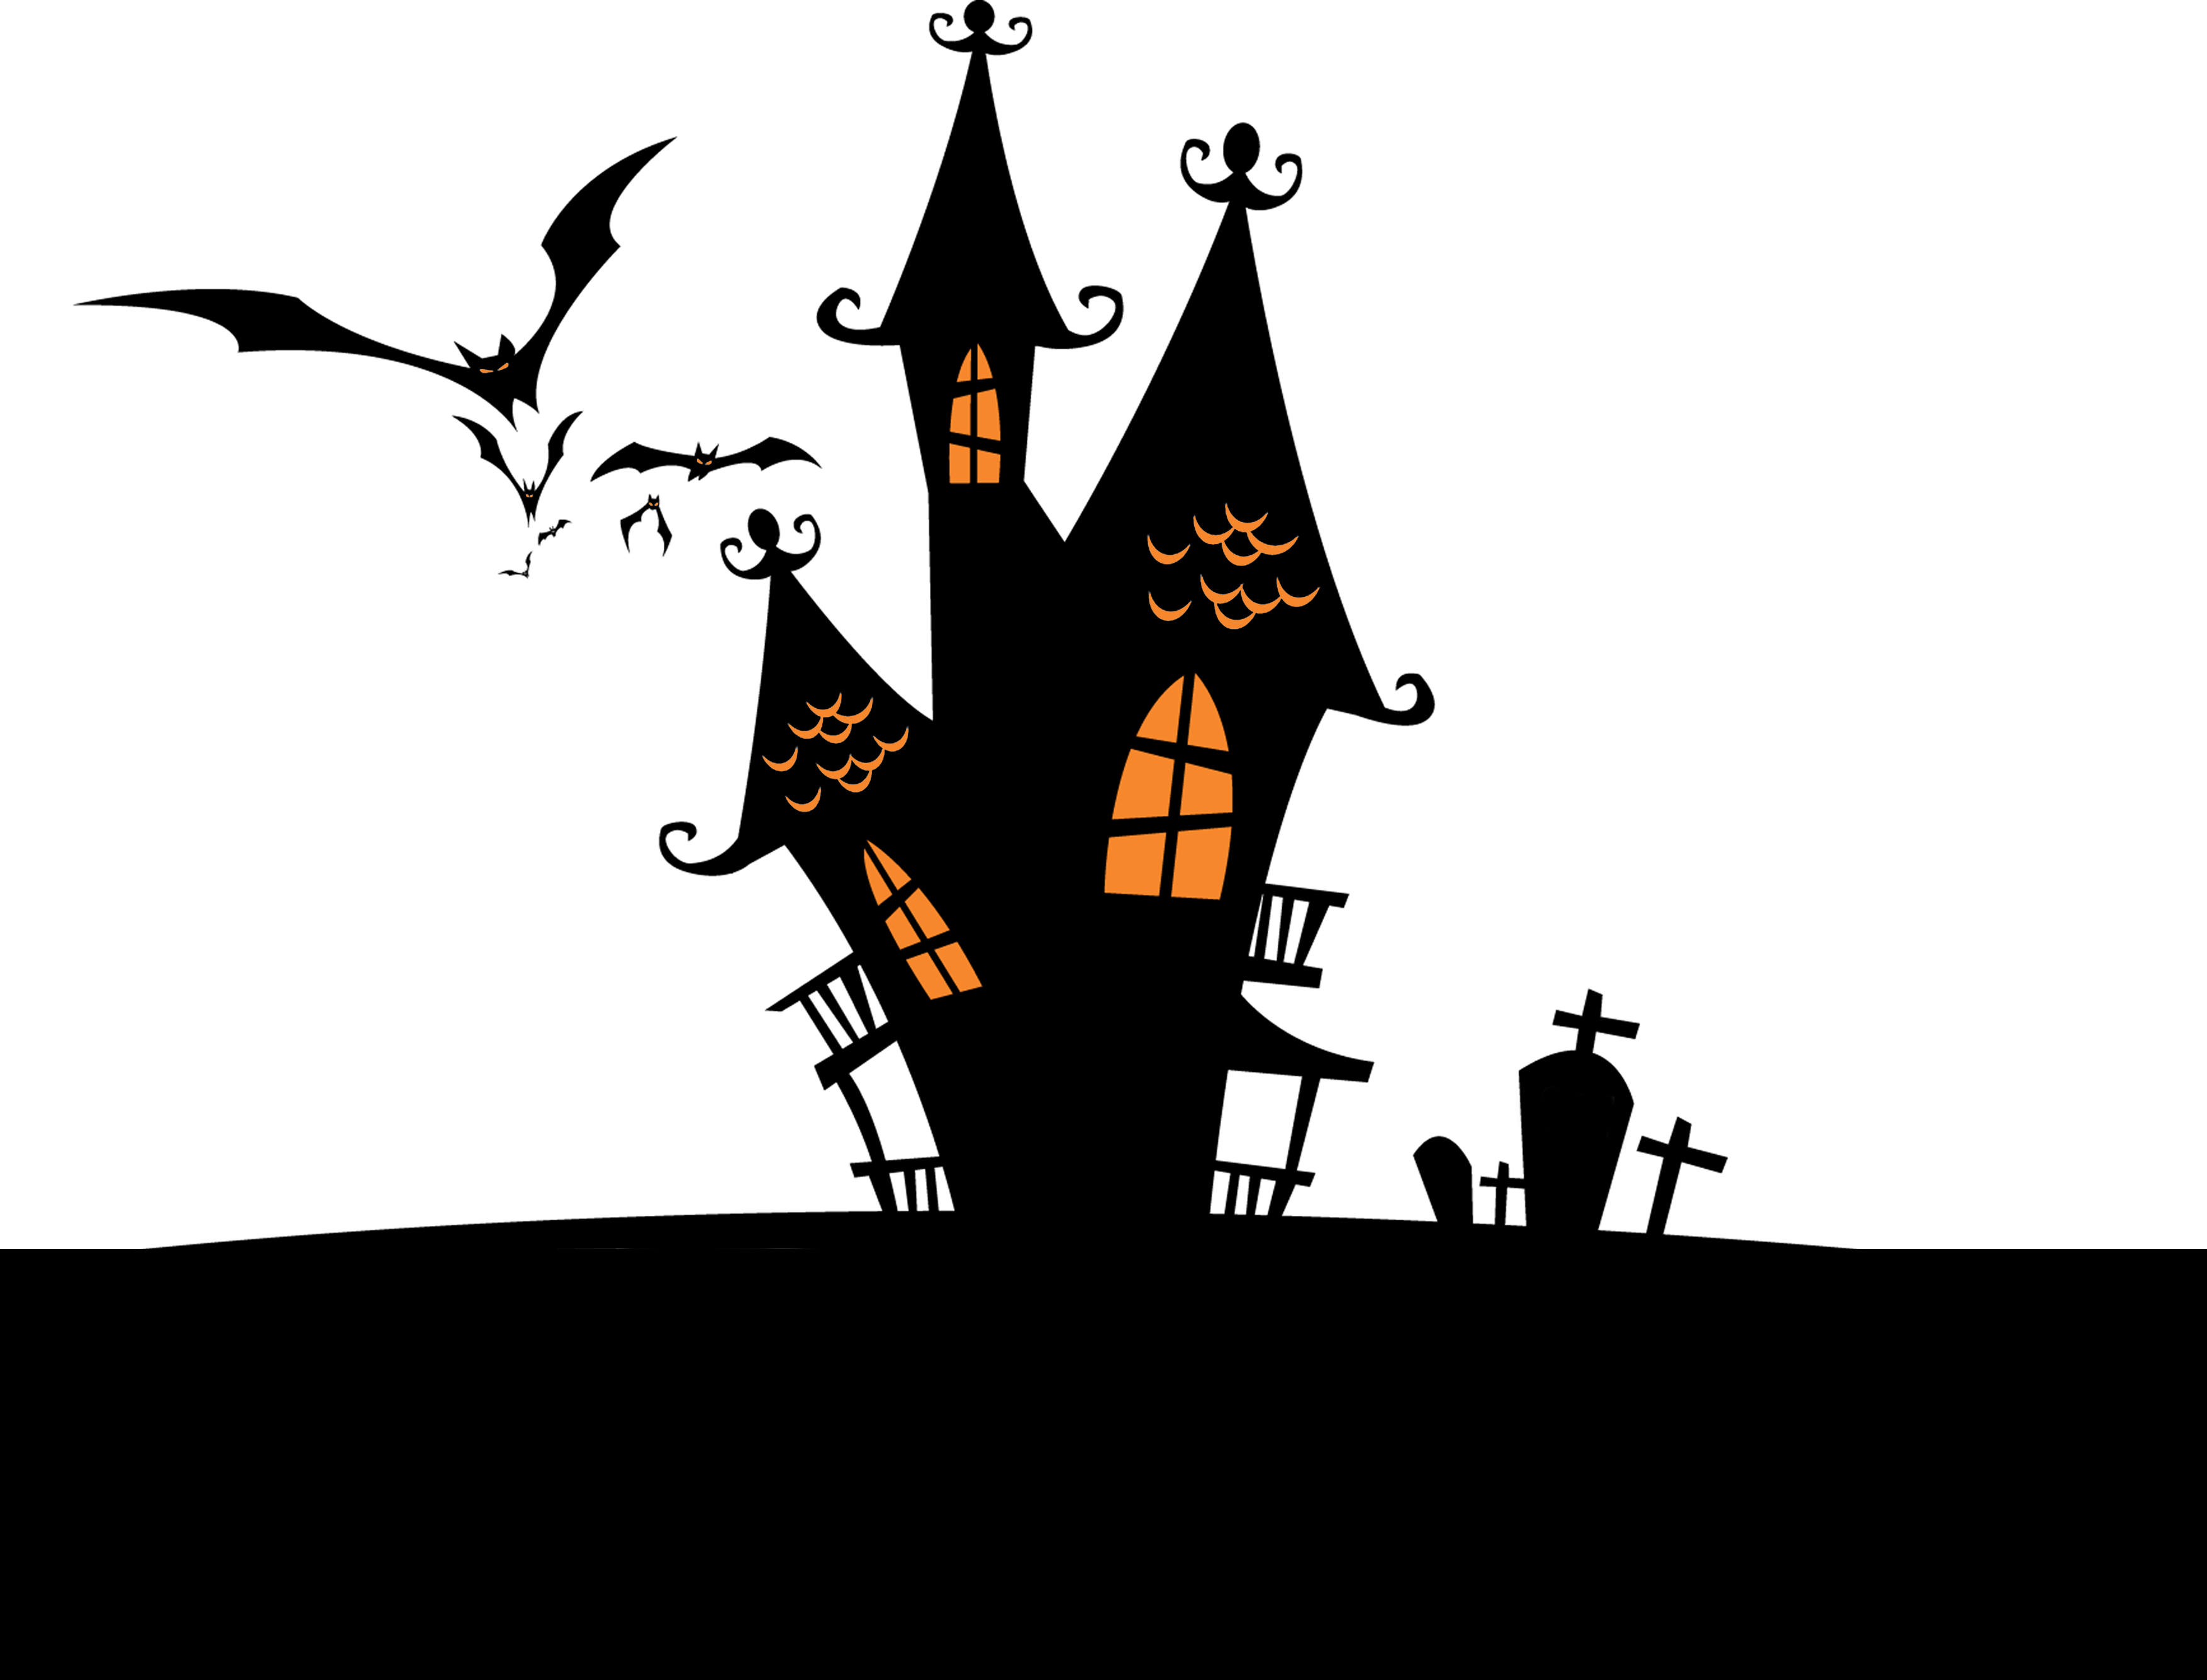 Halloween house silhouettes clipart png black and white library Halloween Bats Facebook Wallpaper - Halloween house 3508*2671 ... png black and white library